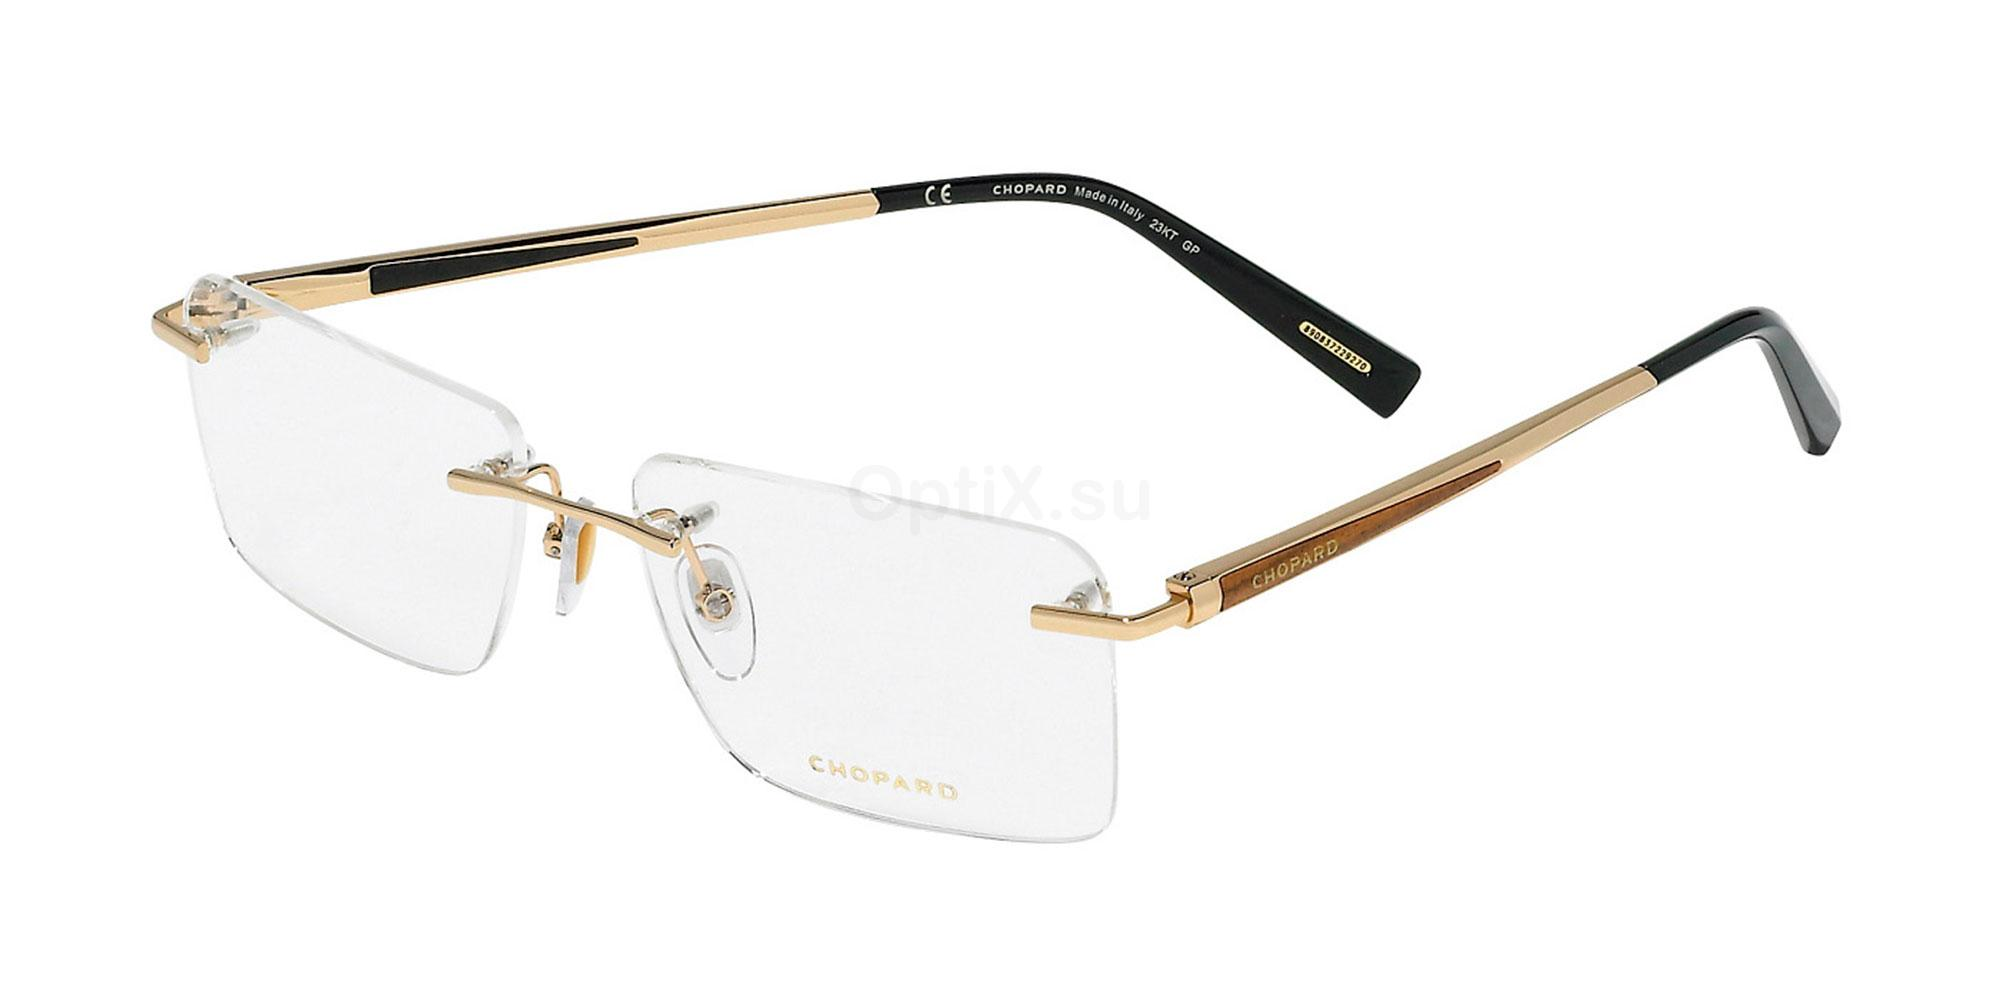 0300 VCHD20 Glasses, Chopard